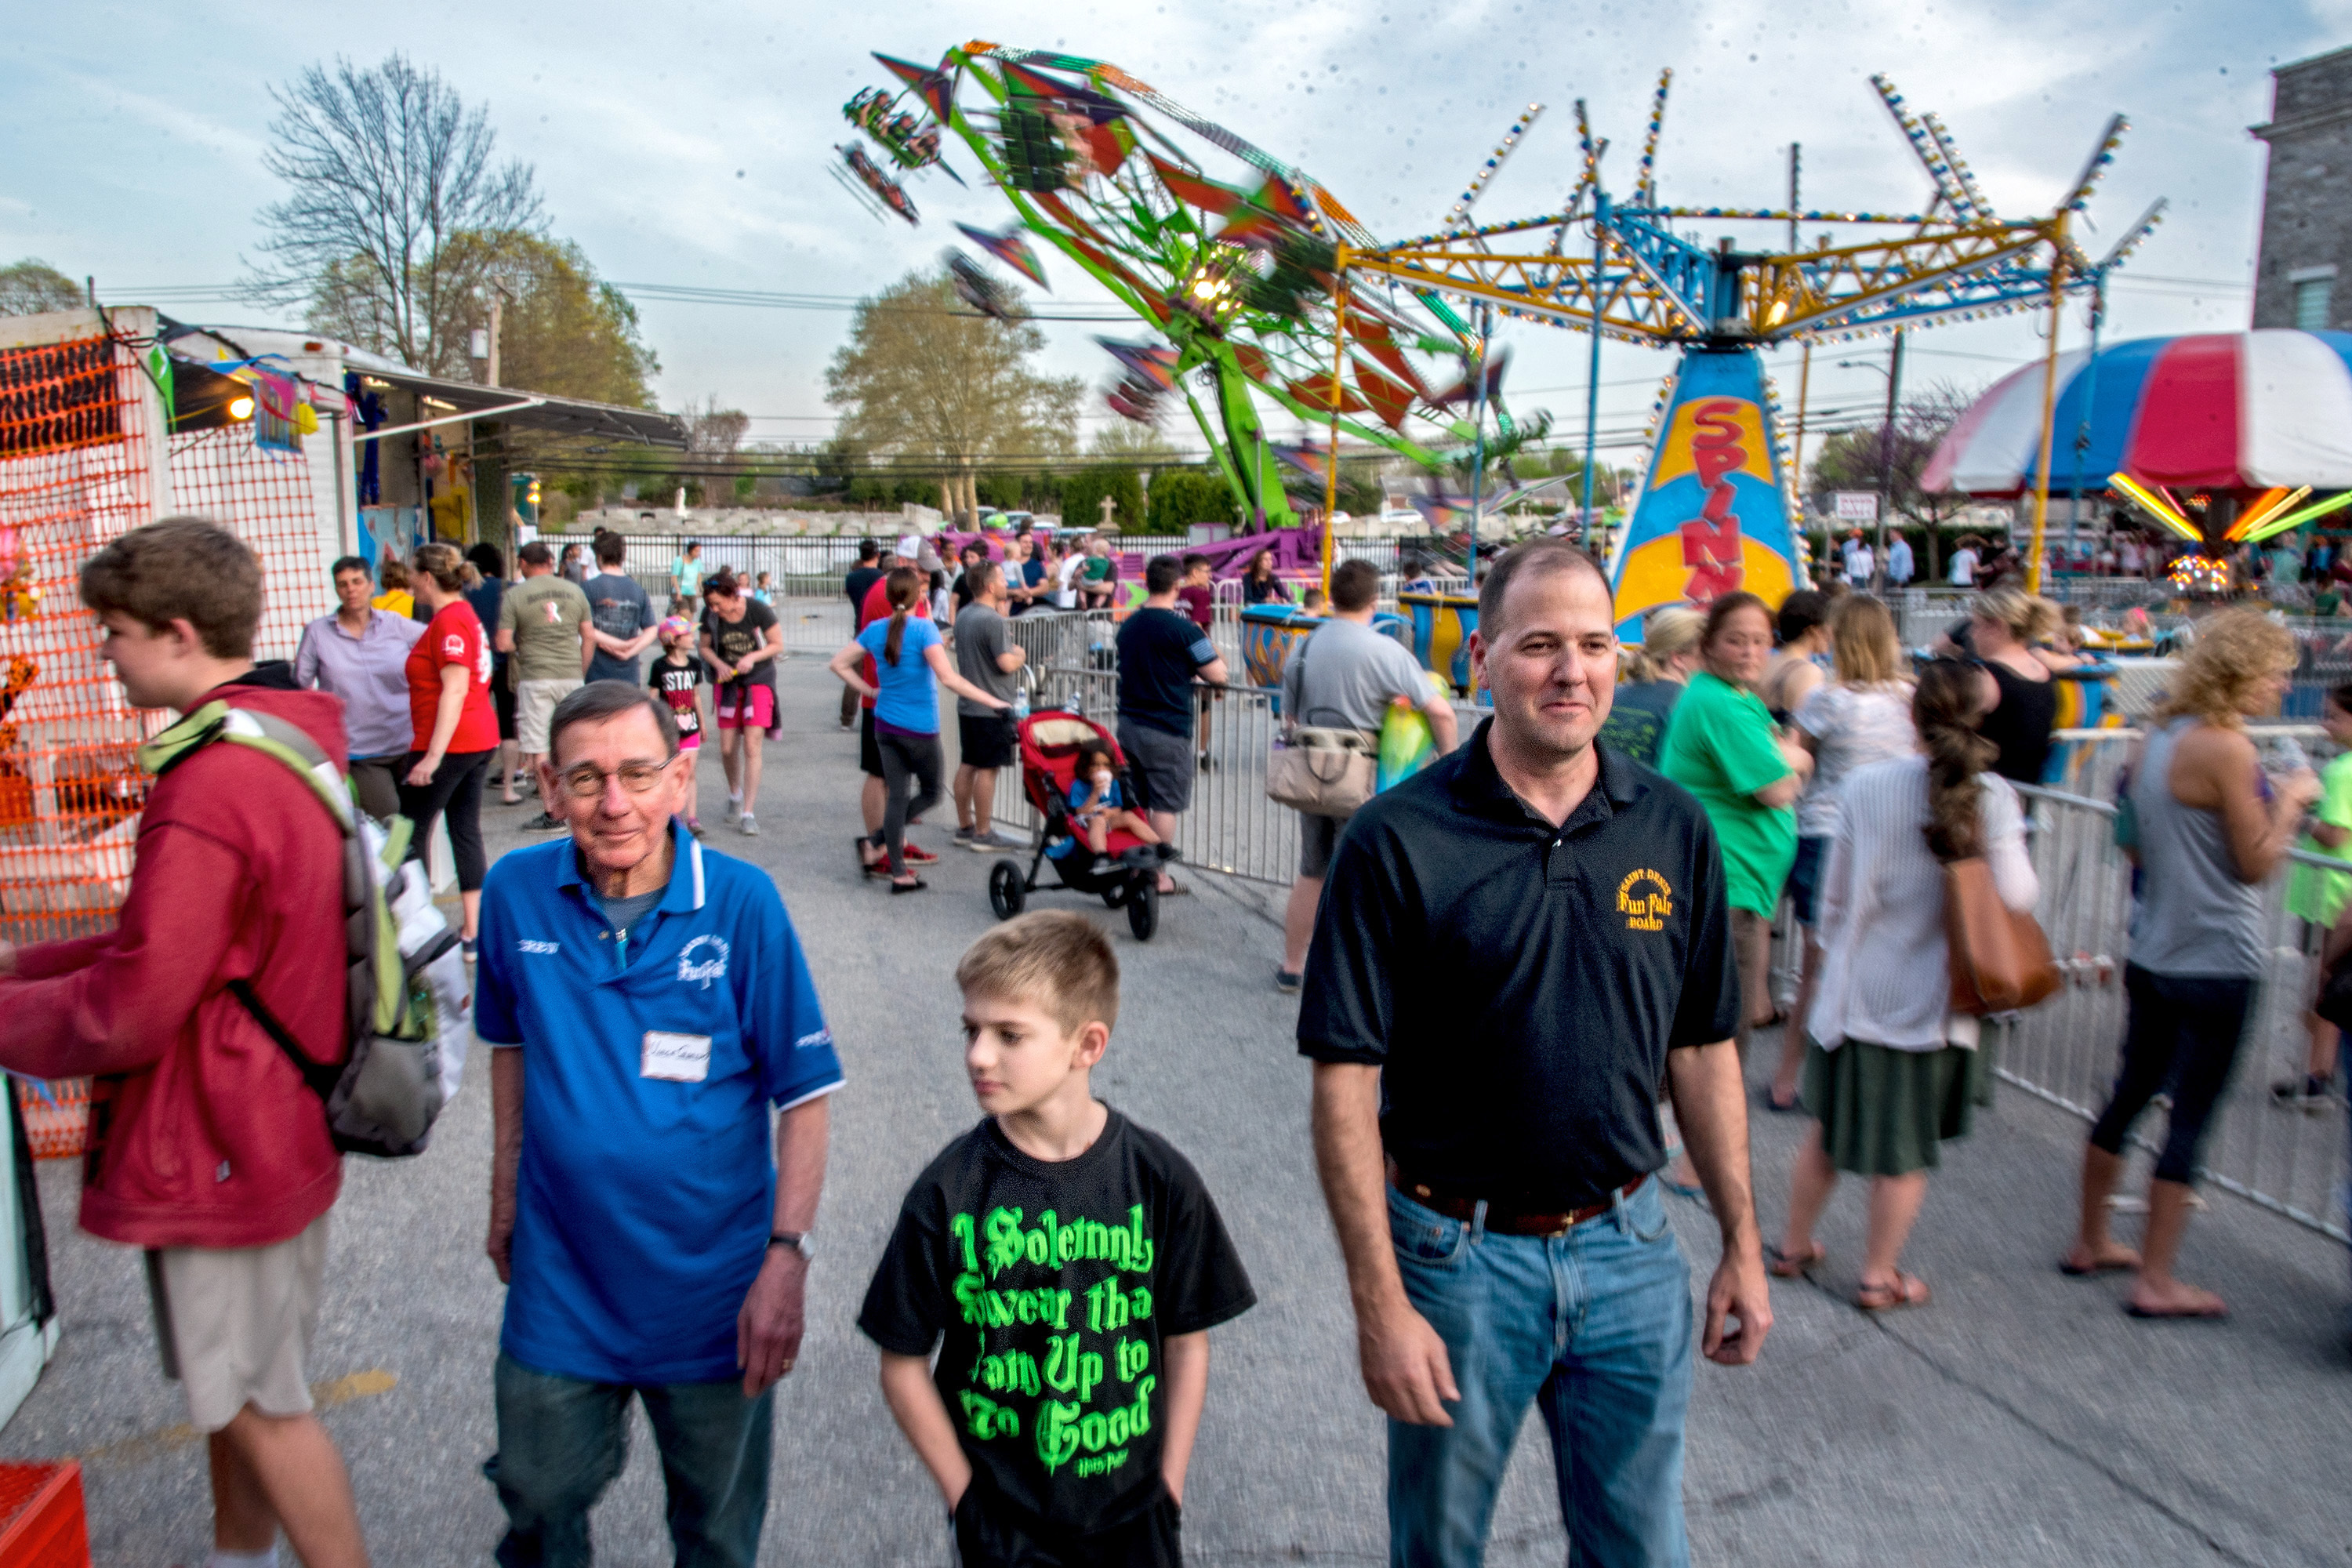 Three generations of Gorskis - Vince, 80; Brogan, 10; and Chris, 46 - walk through the St. Denis Family Fun Fair May 2, 2018. Grandfather and son have helped keep this carnival alive, along with so many others who won´t let it vanish.